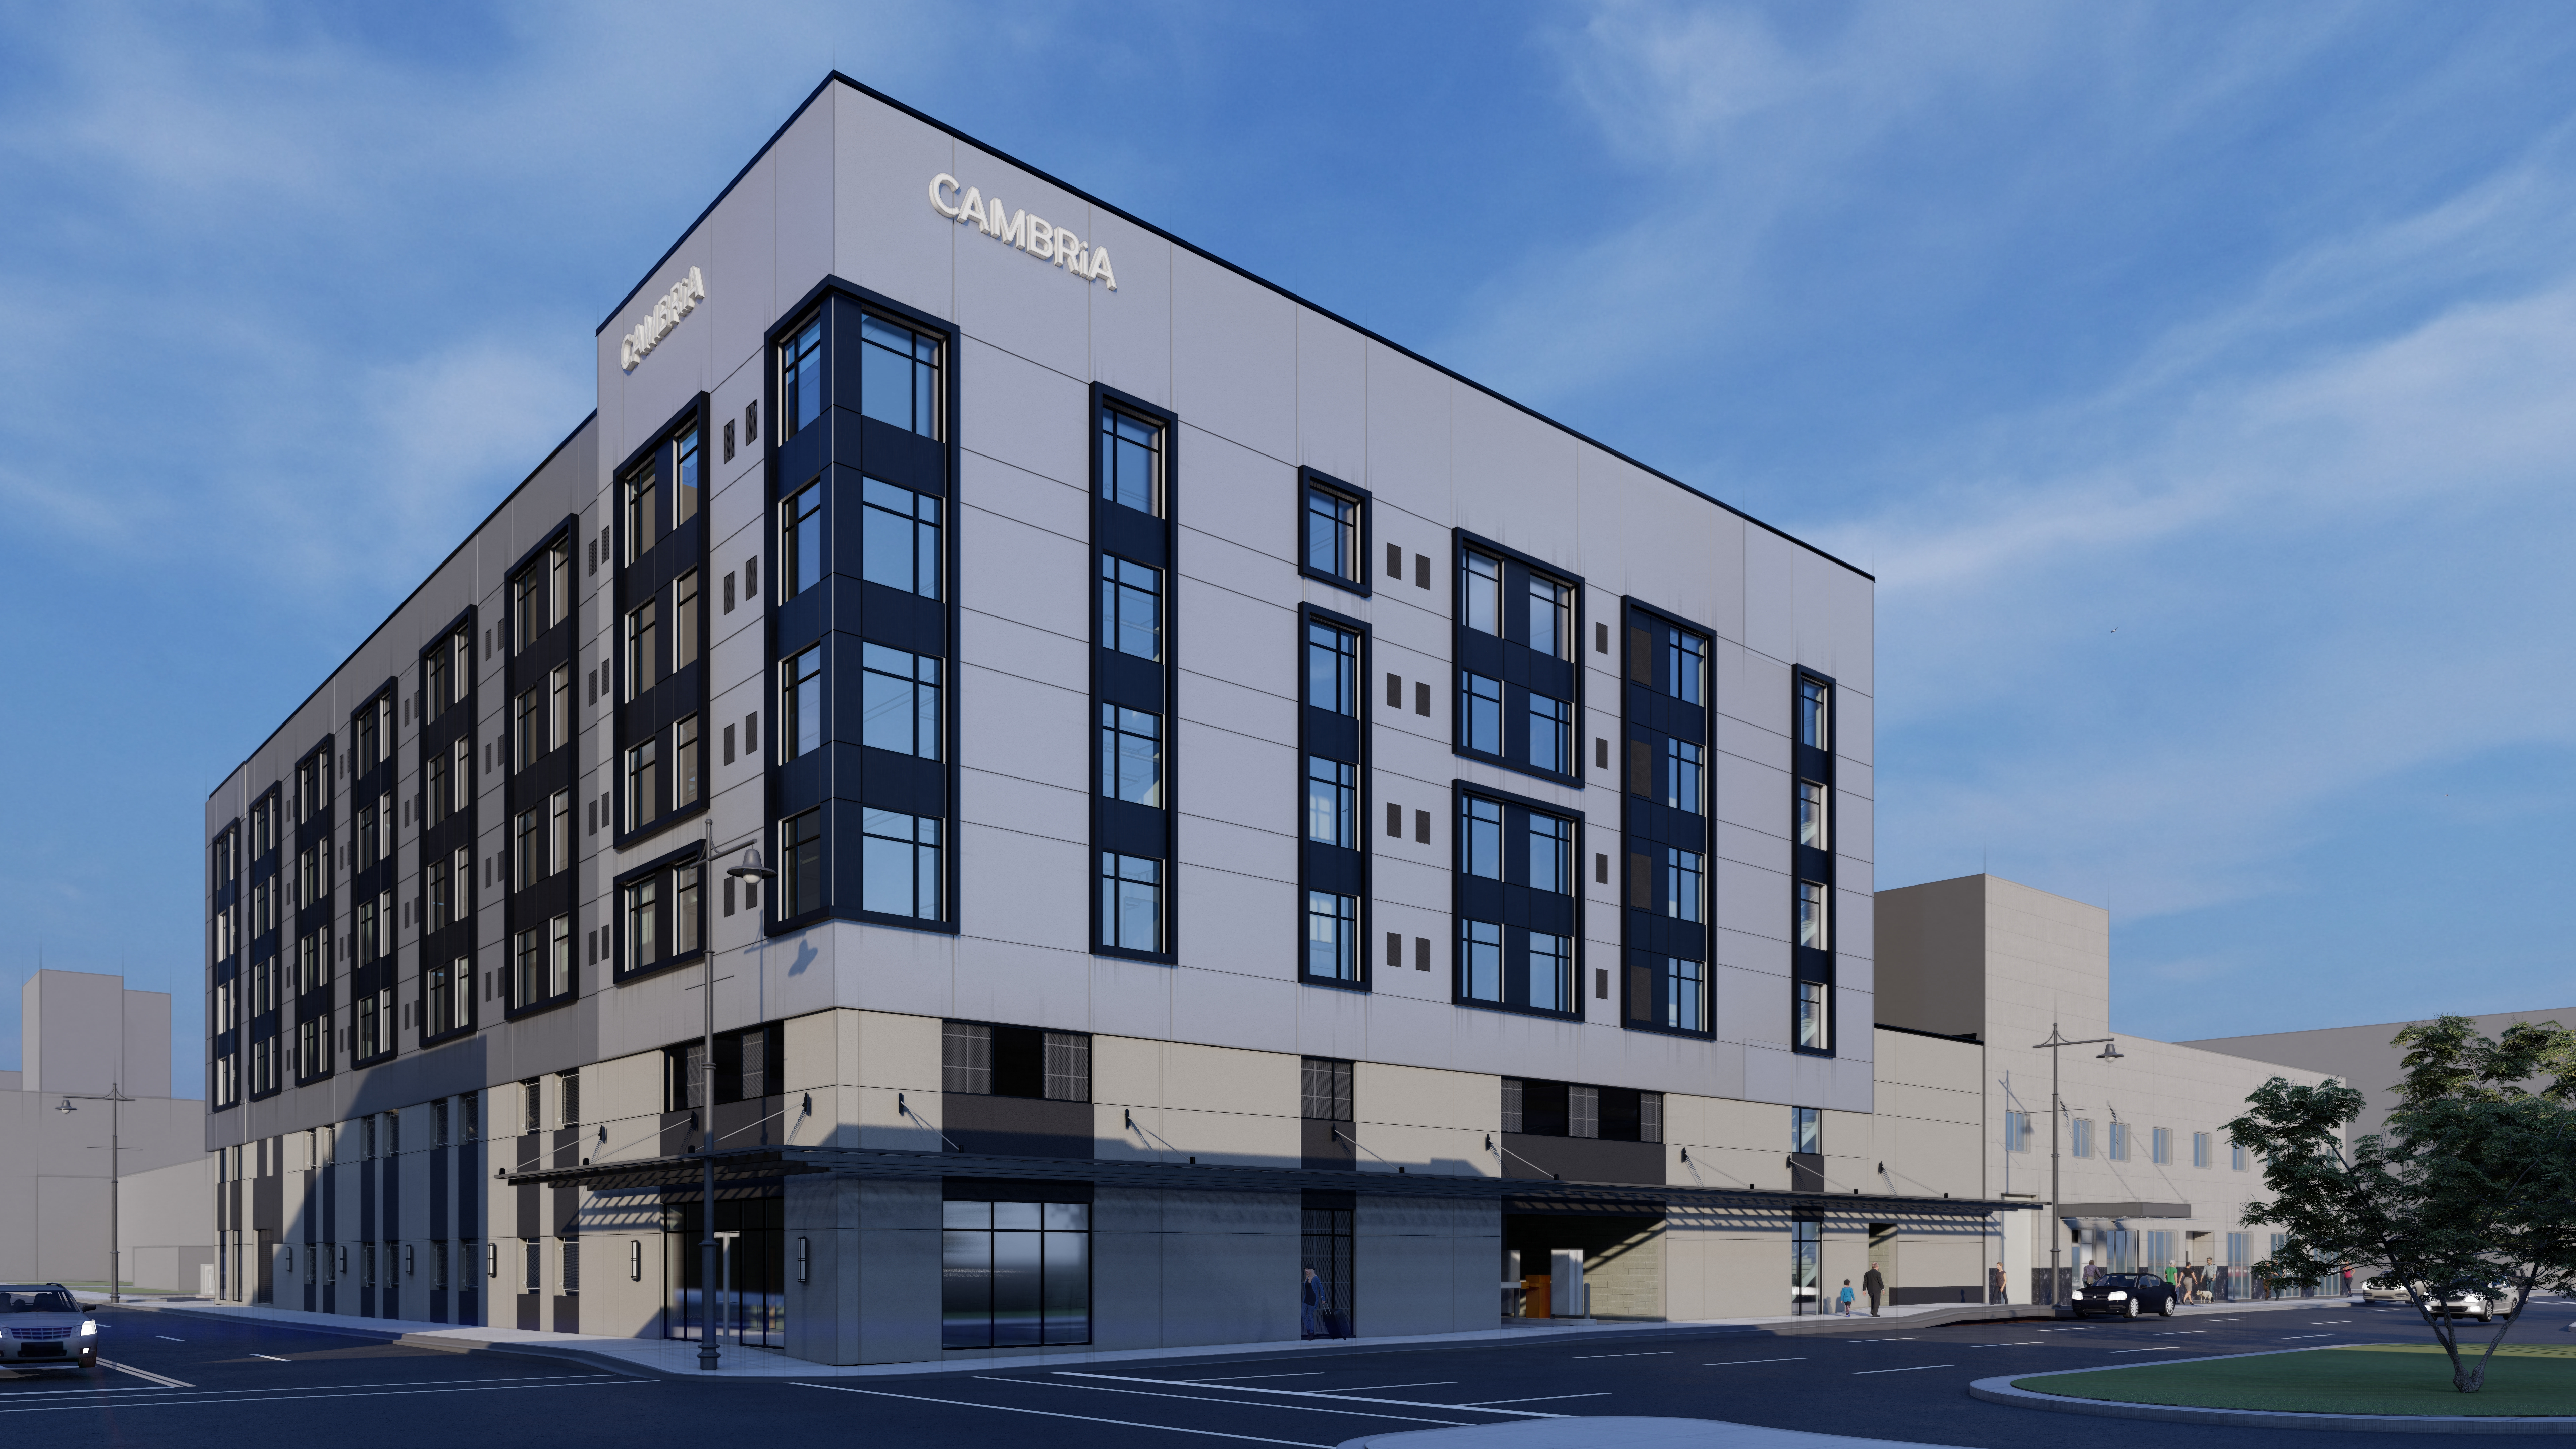 Exterior of a six-story hotel with modular design. There's panels of different colors around the windows.